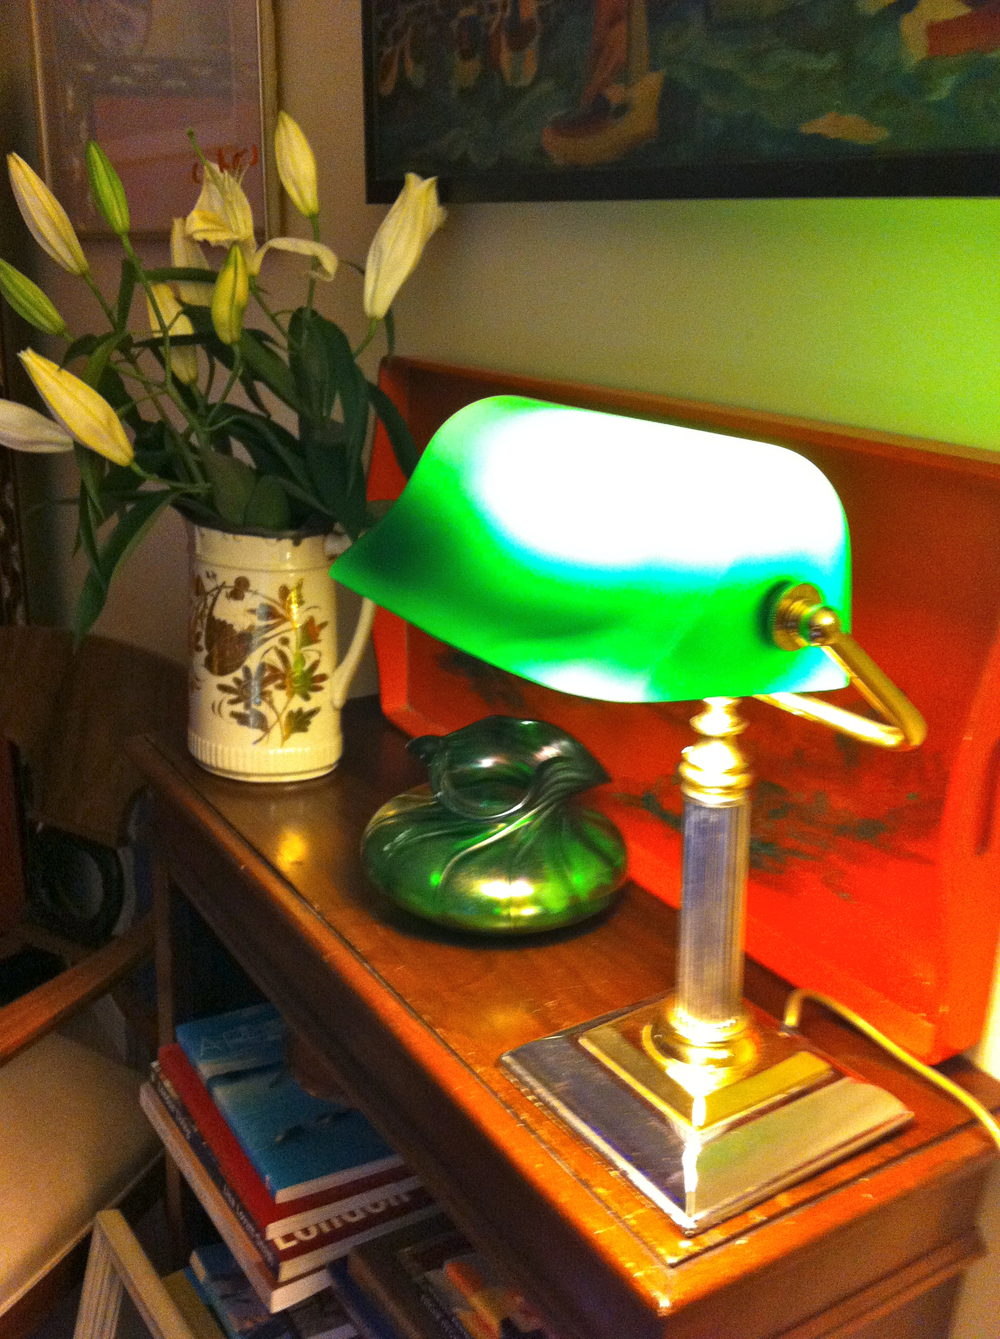 Vintage bankers desk lamp - Vintage Bankers Lamp Antique Lighting Antique Desk Lamps